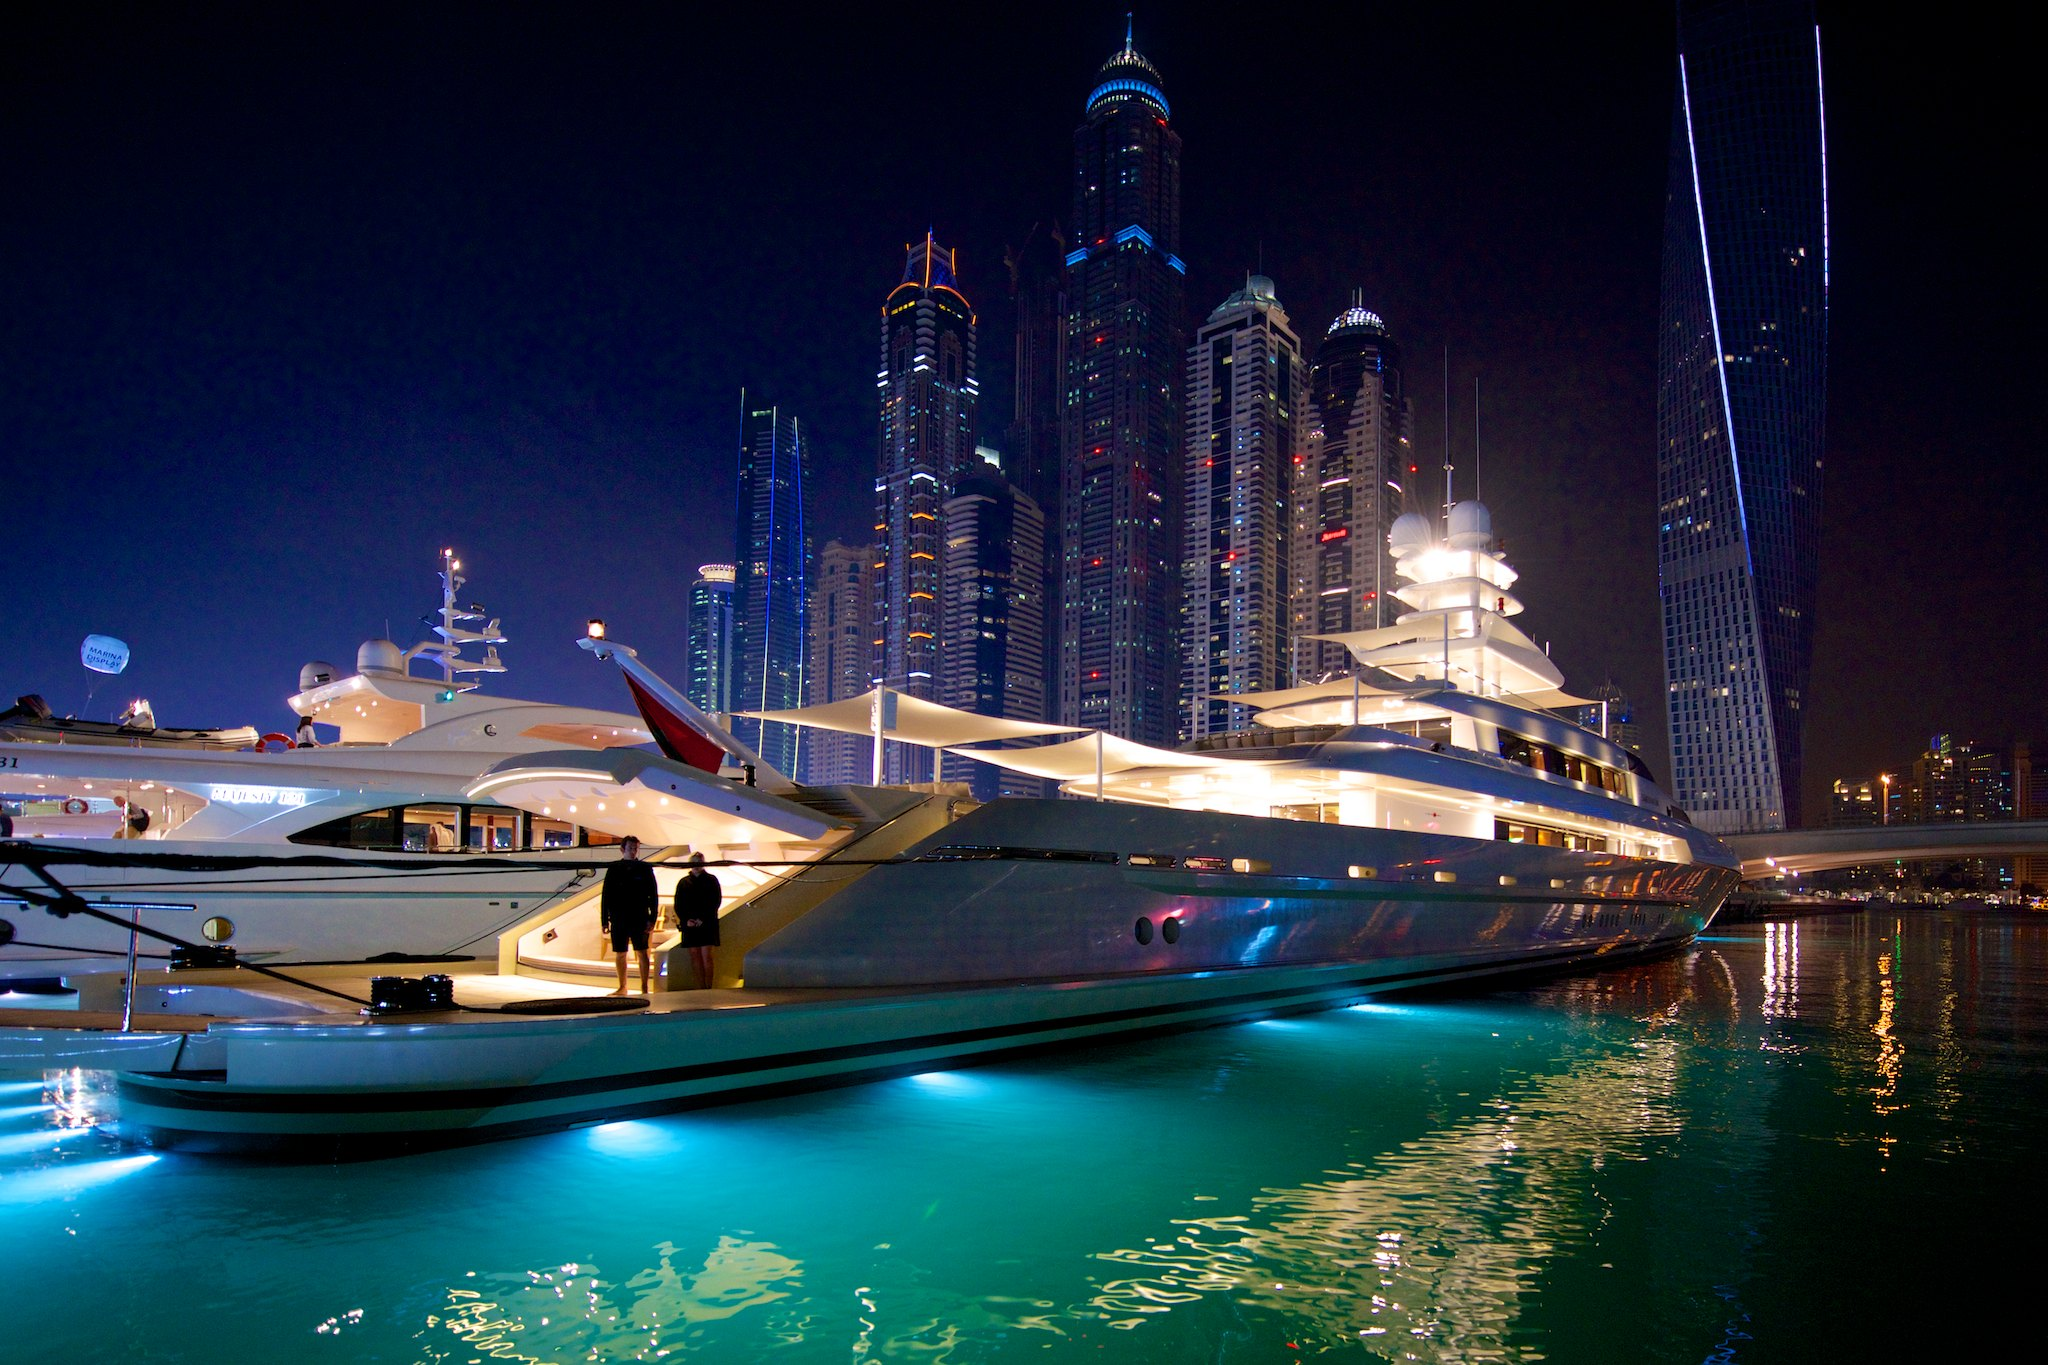 Luxury Yachts with Skyscraper City at the Dubai International Boat ...